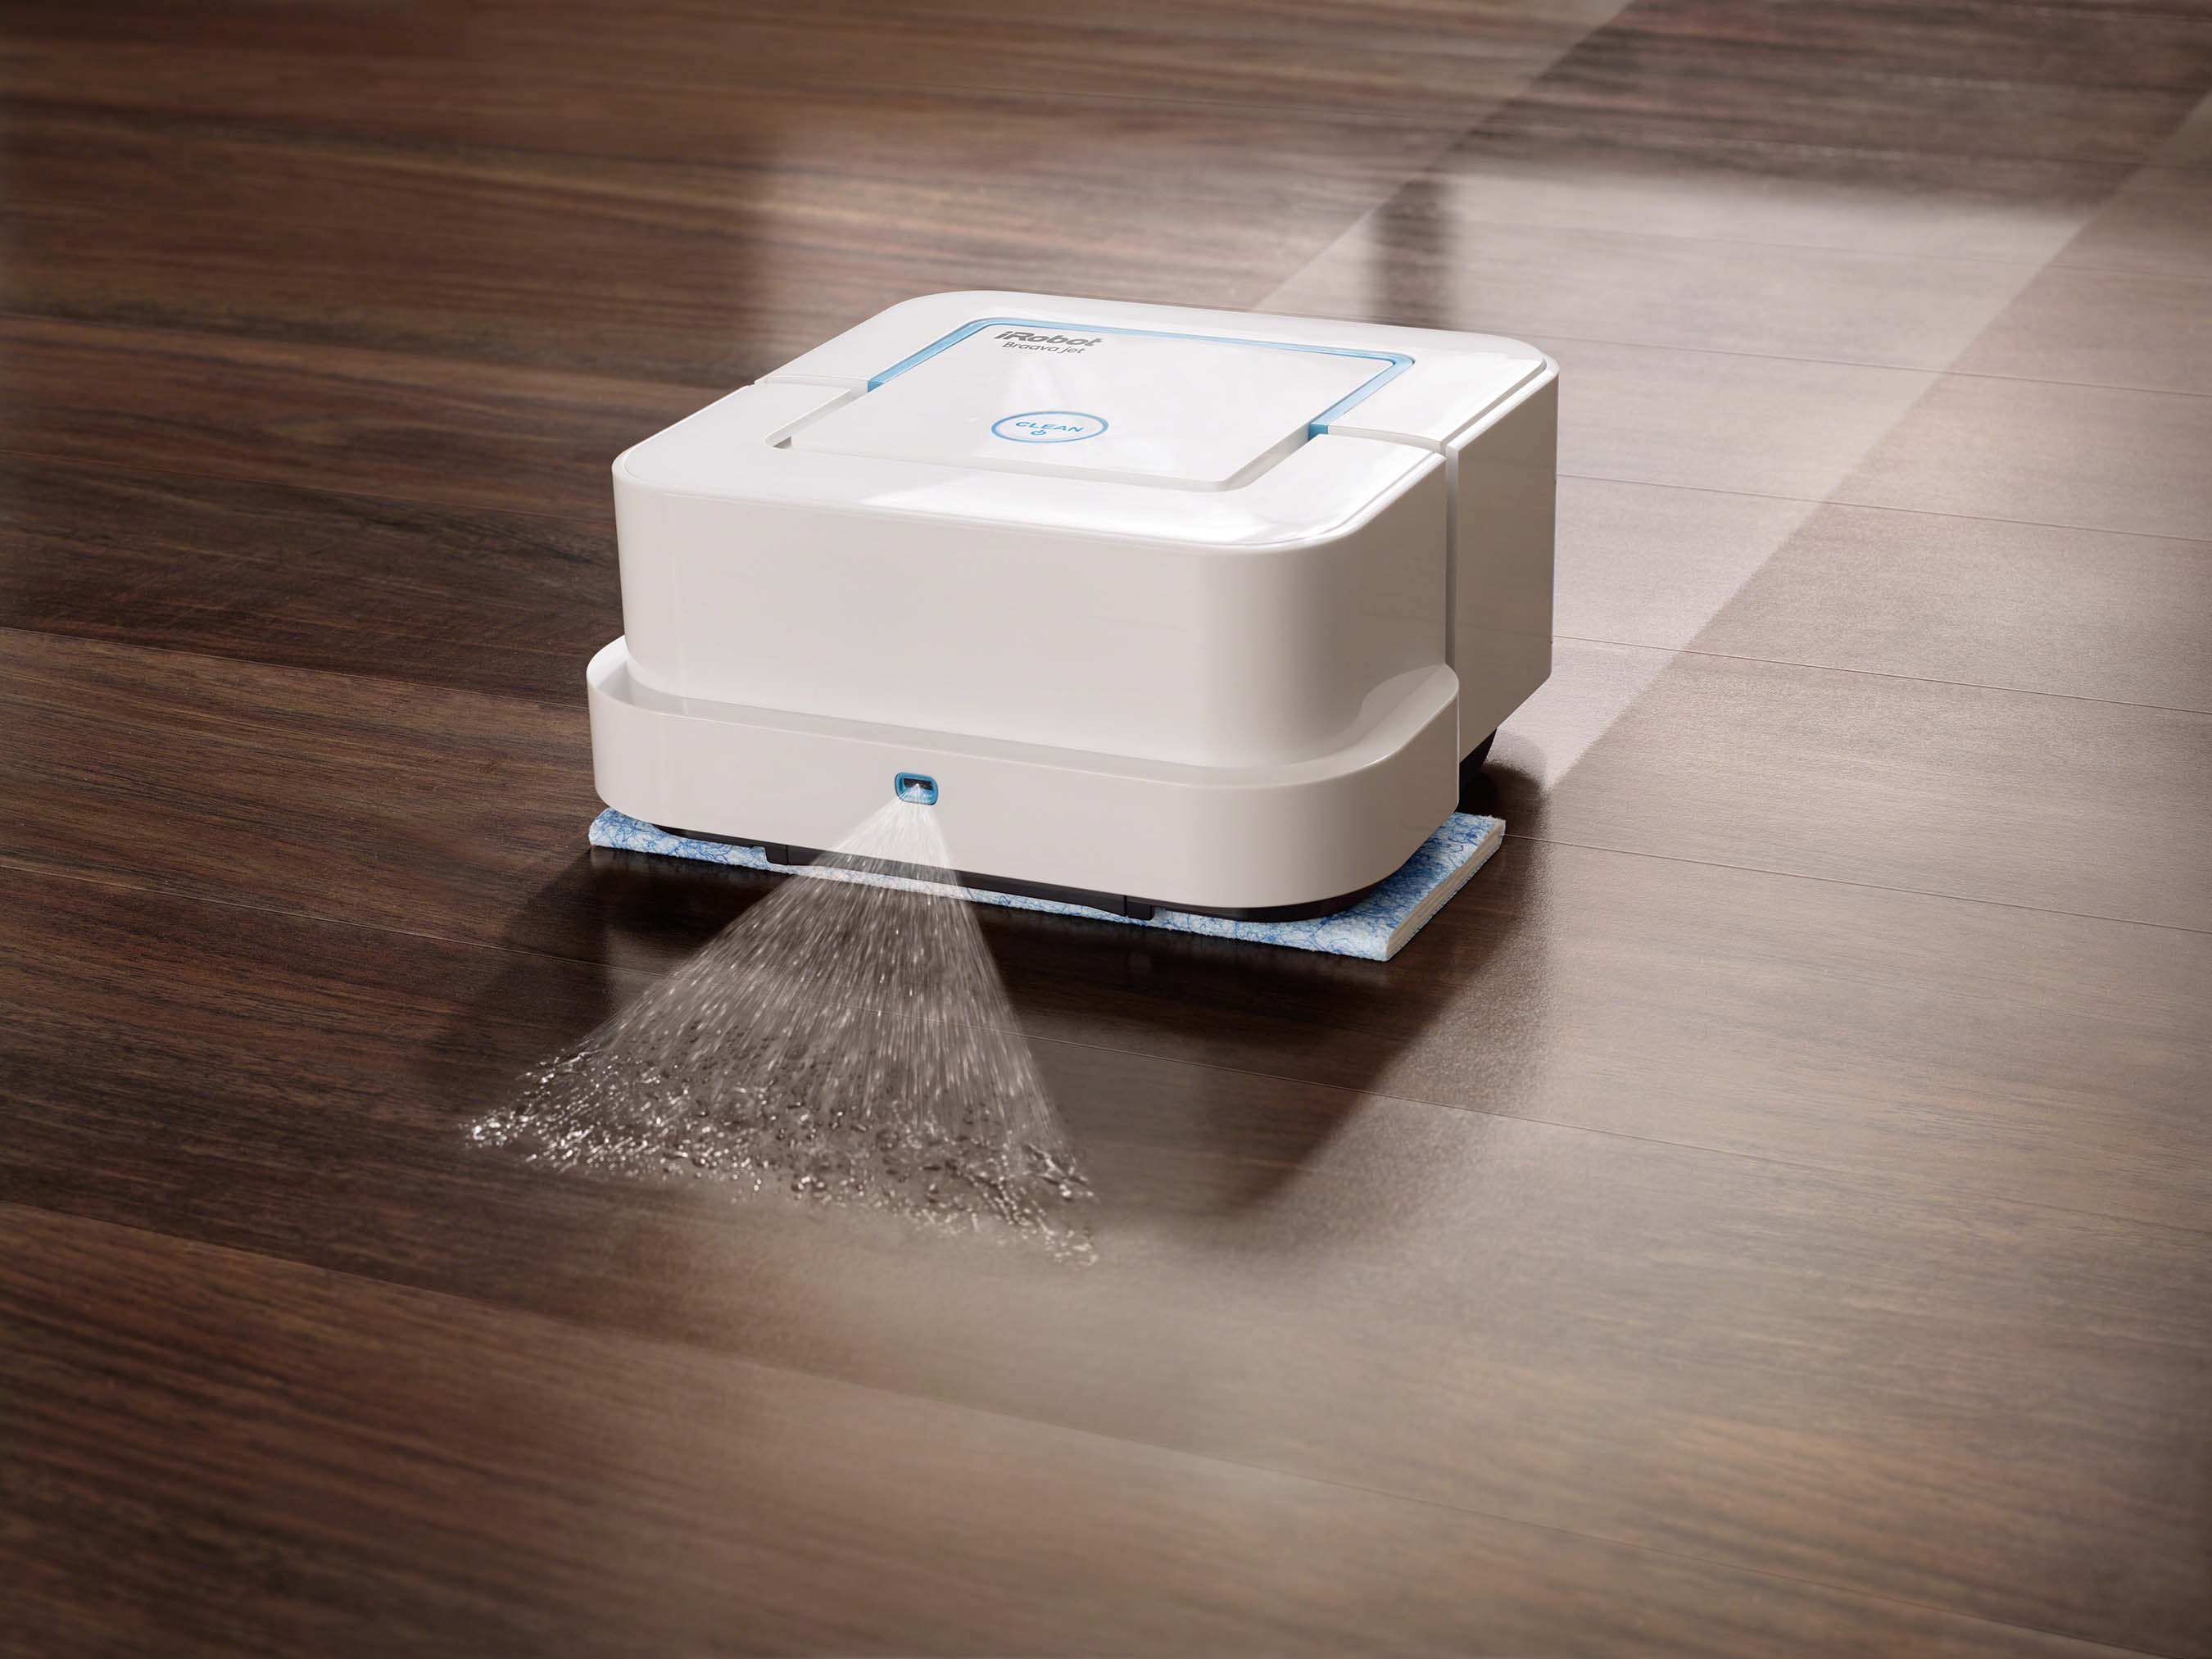 cleaner robot connected walmart floor robotics botvac everyday vacuum com cleaning neato navigating ip